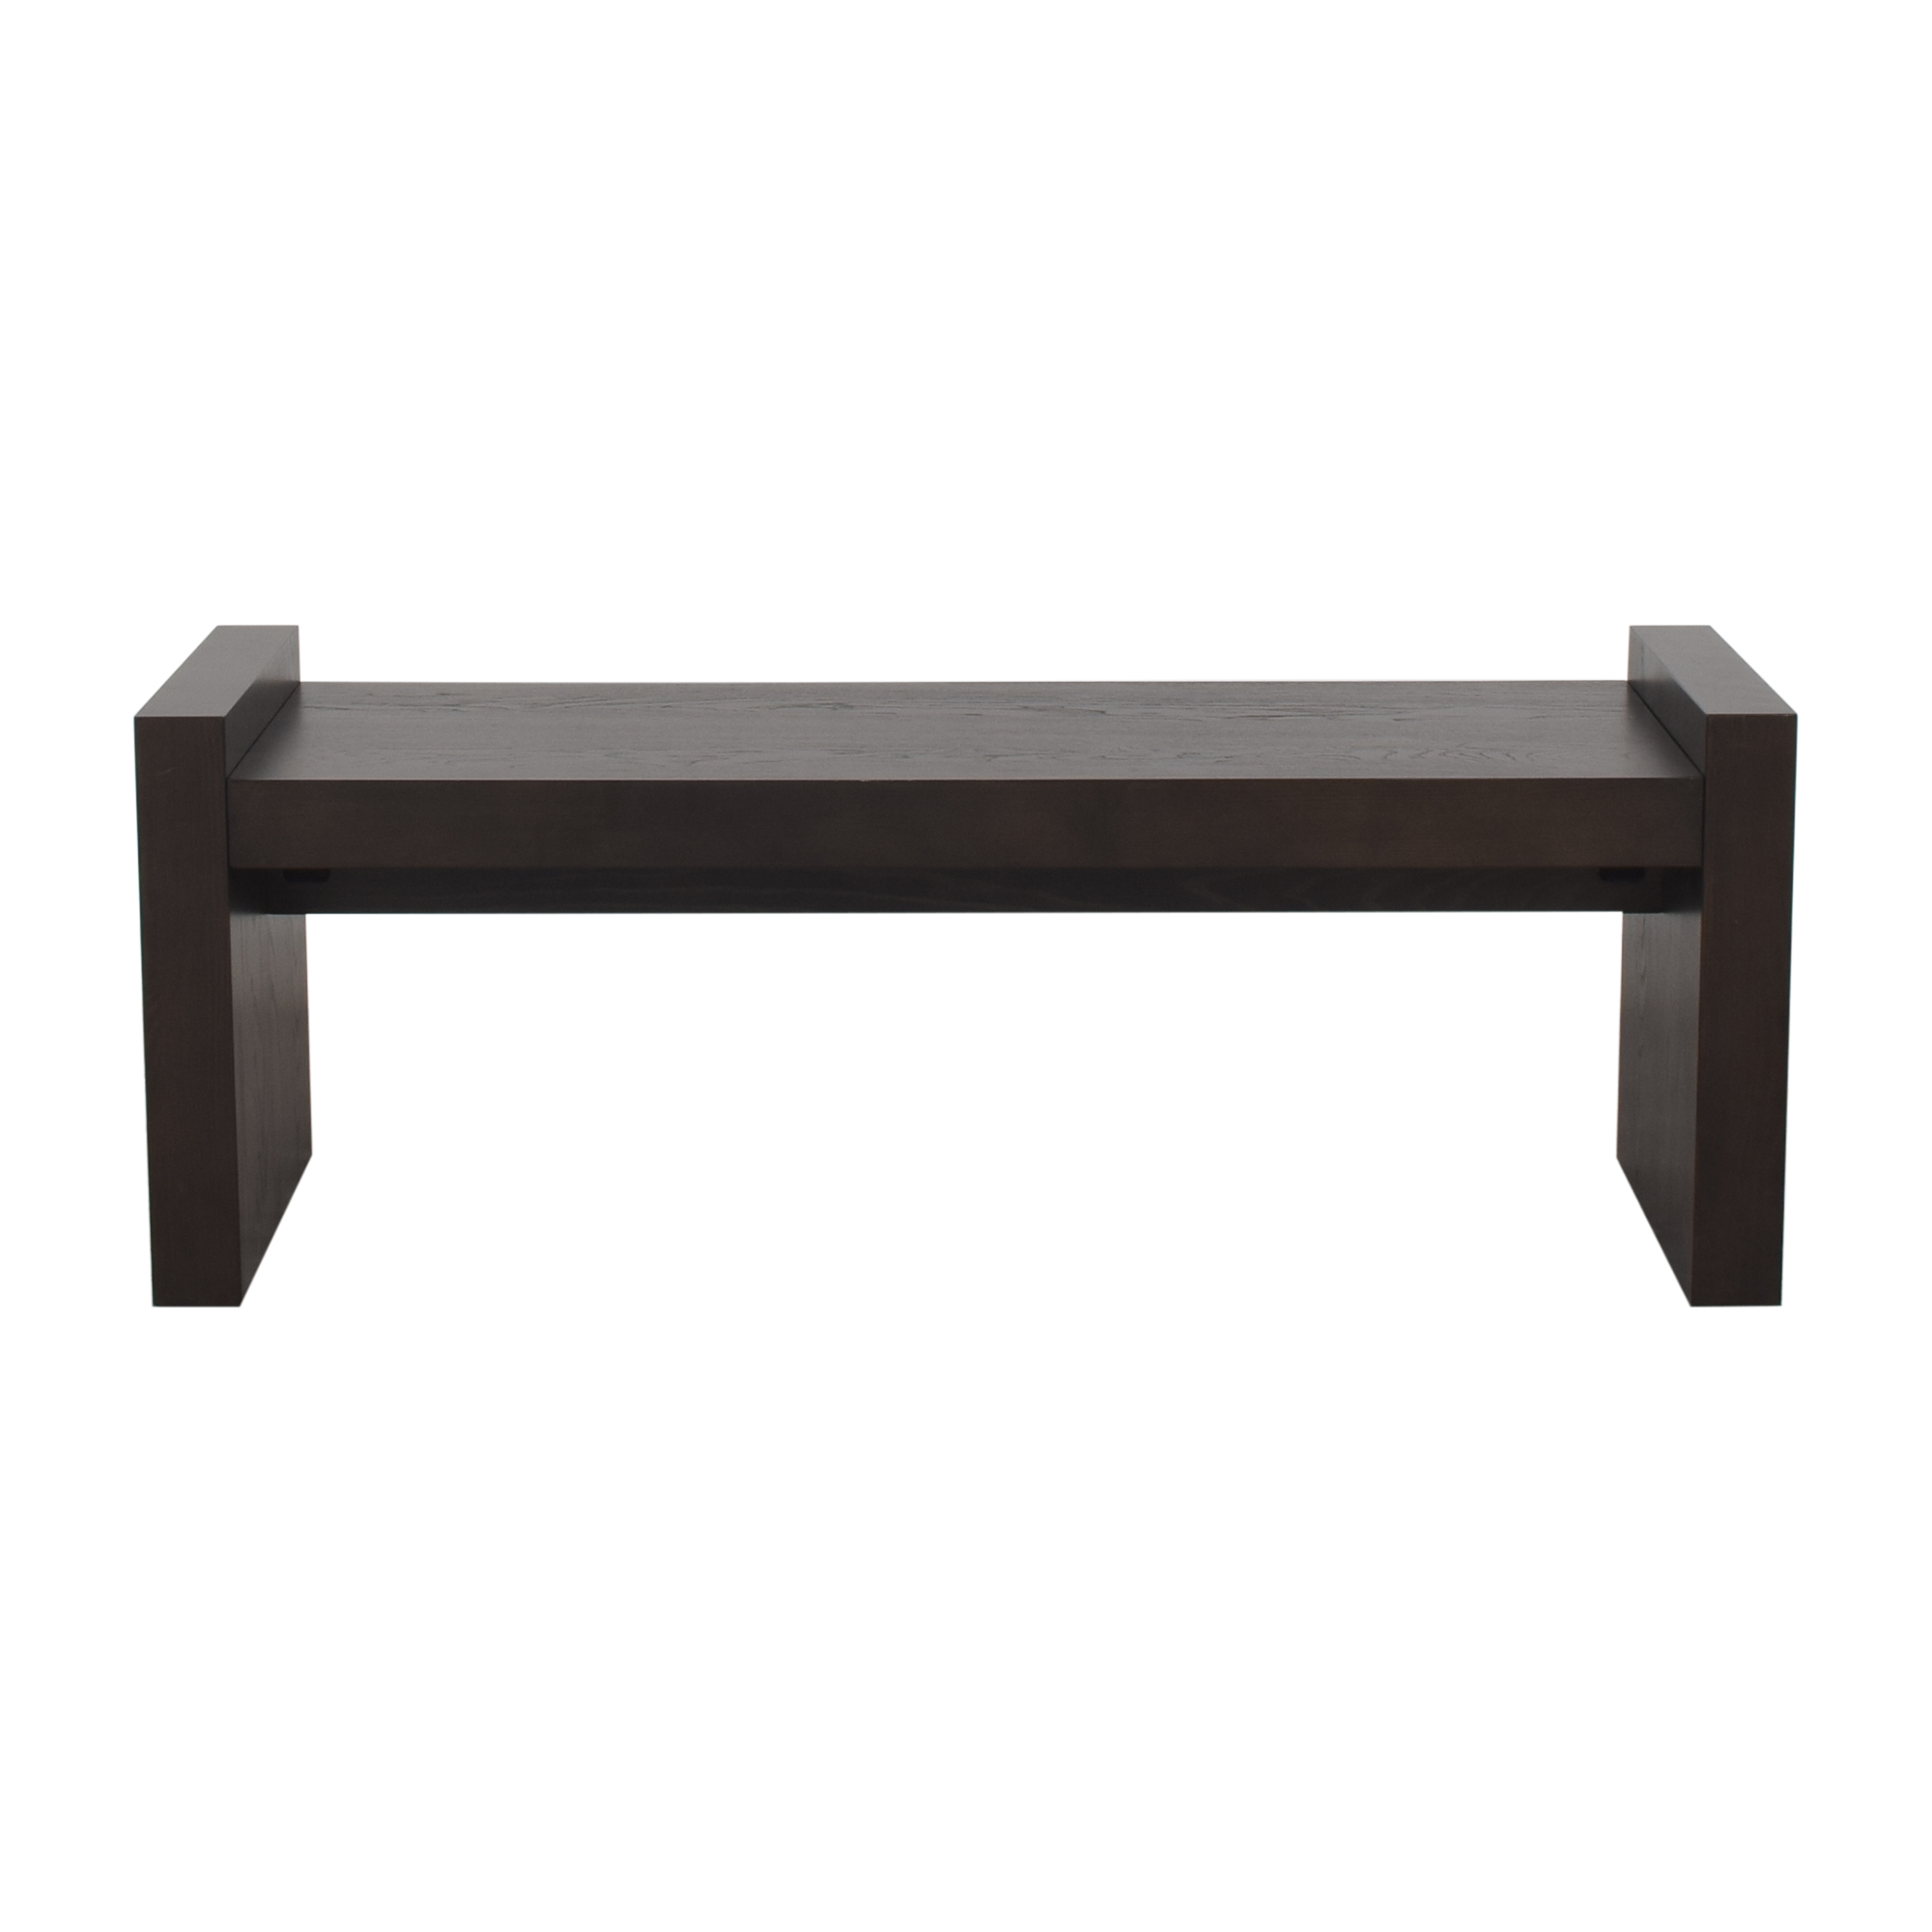 West Elm West Elm Terra Dining Bench nj